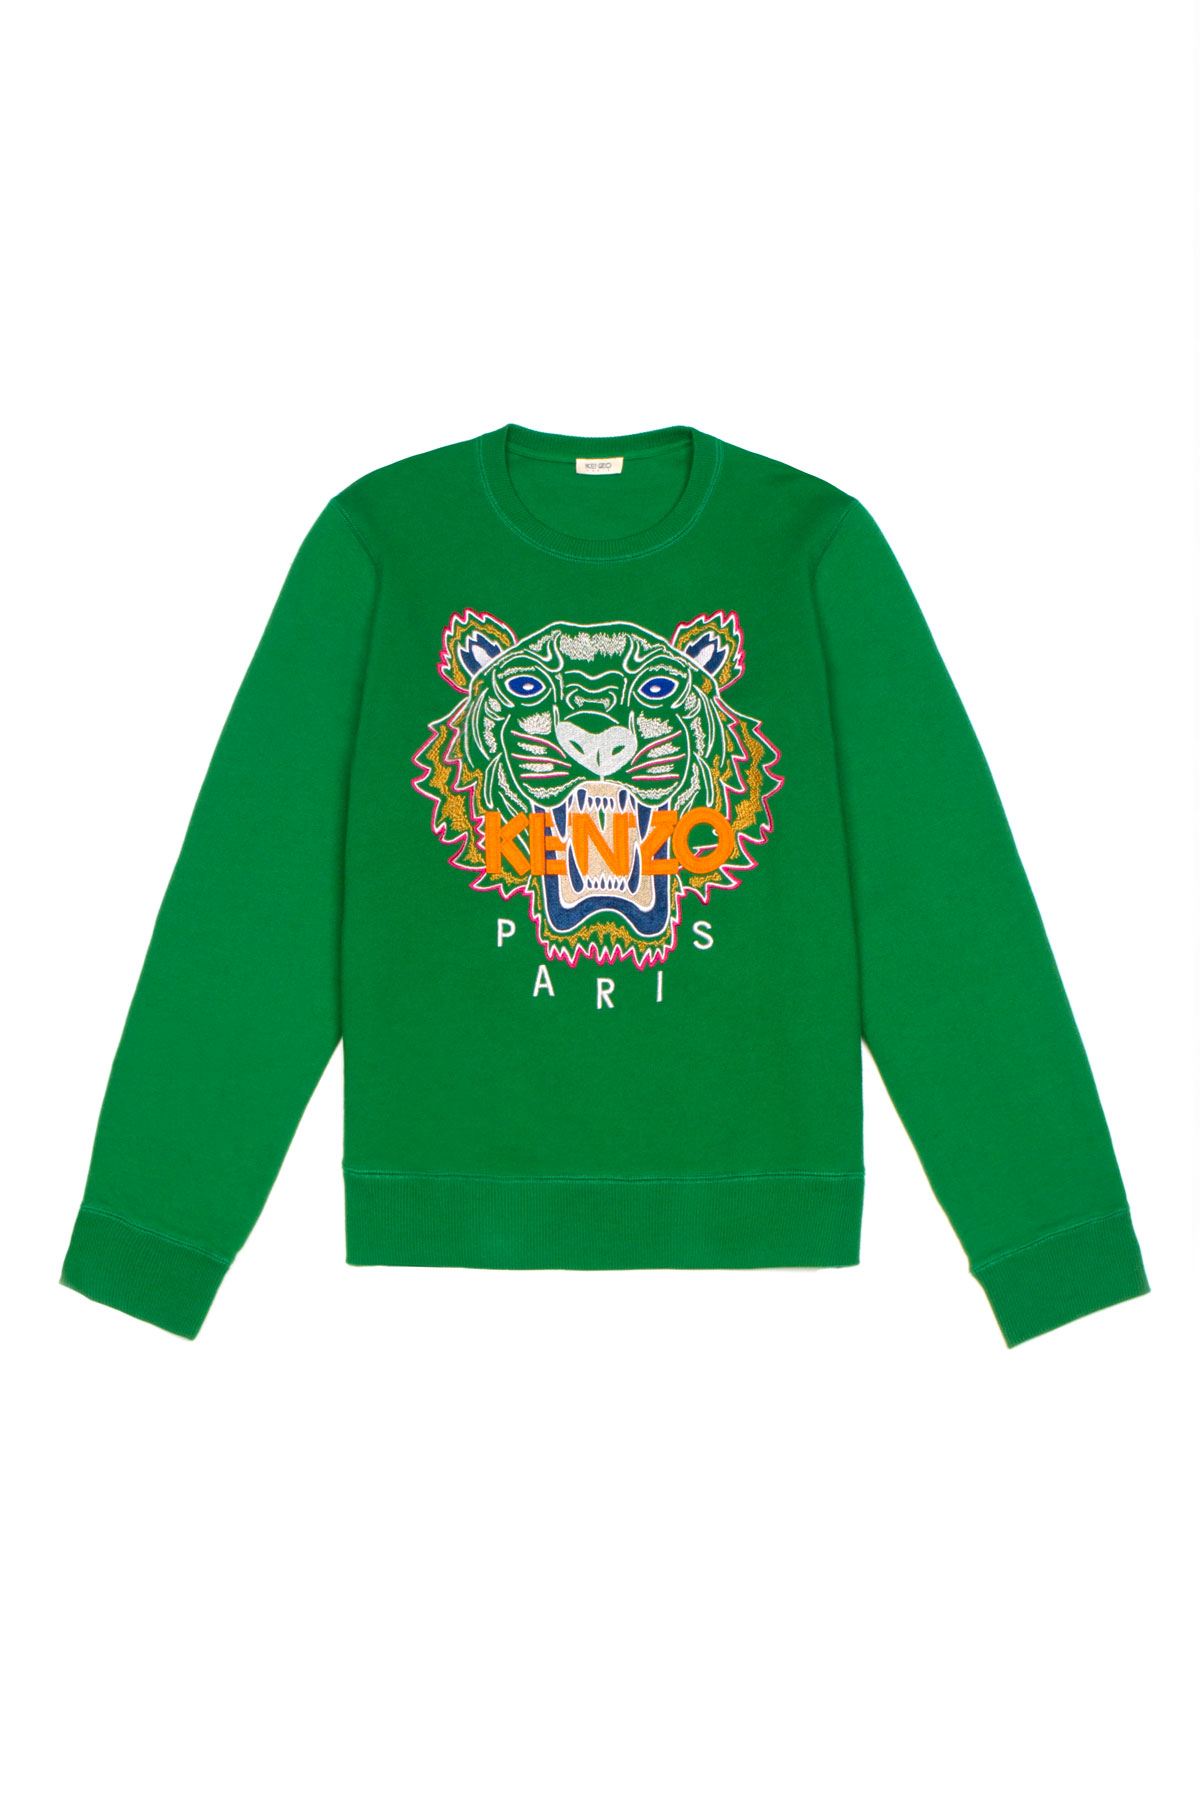 kenzo tiger embroidery sweater women kenzo opening ceremony. Black Bedroom Furniture Sets. Home Design Ideas